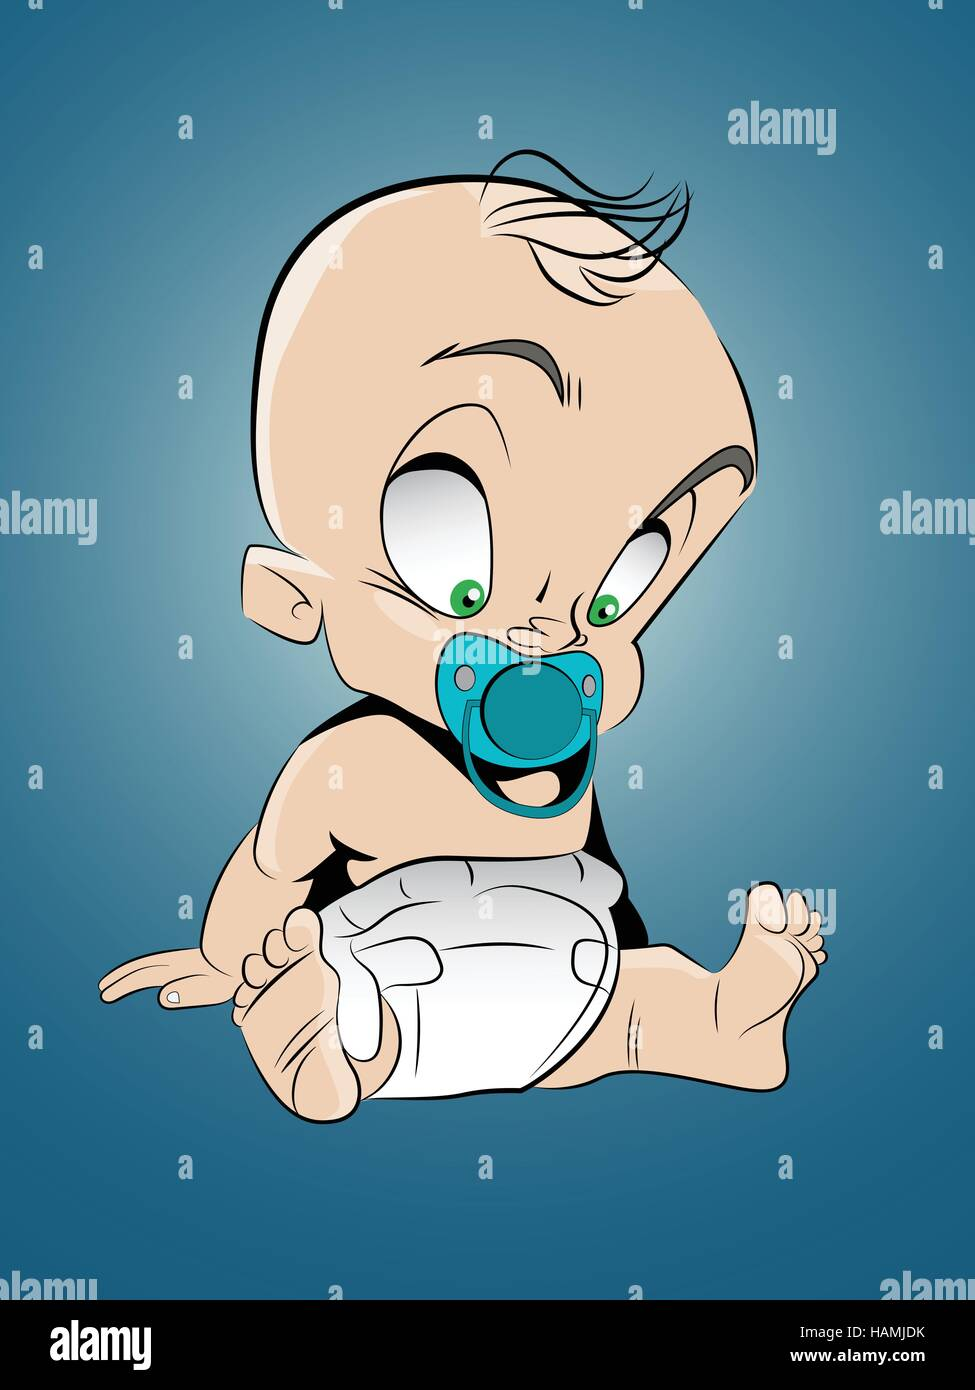 Vector illustration of a cartoon style baby sitting on the ground - Stock Vector